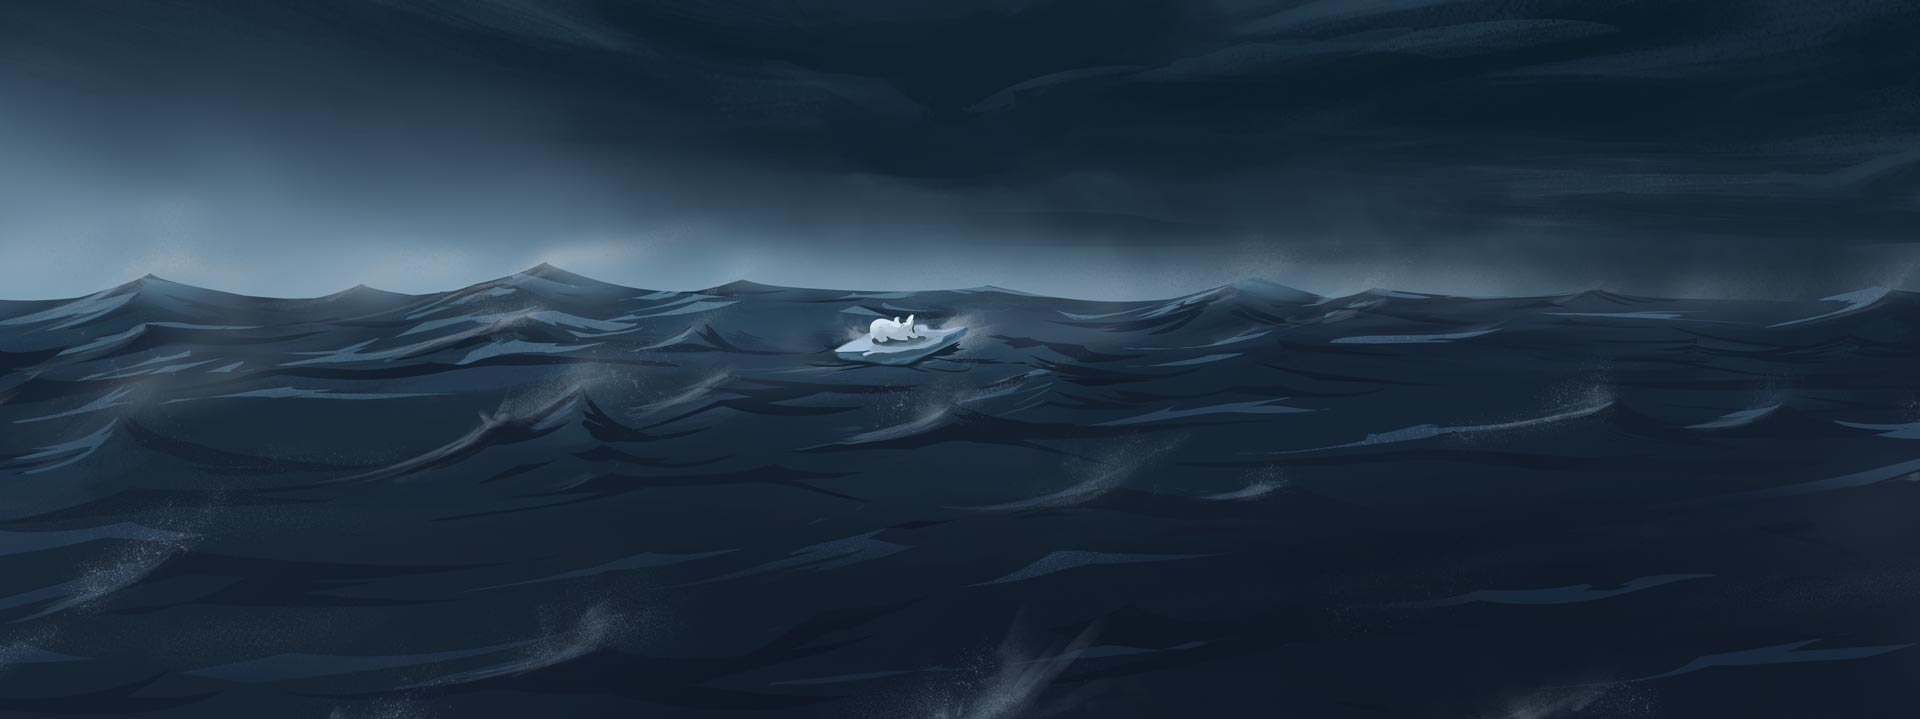 Calm before the storm background illustration for Pigeon Studio by Jakub Cichecki